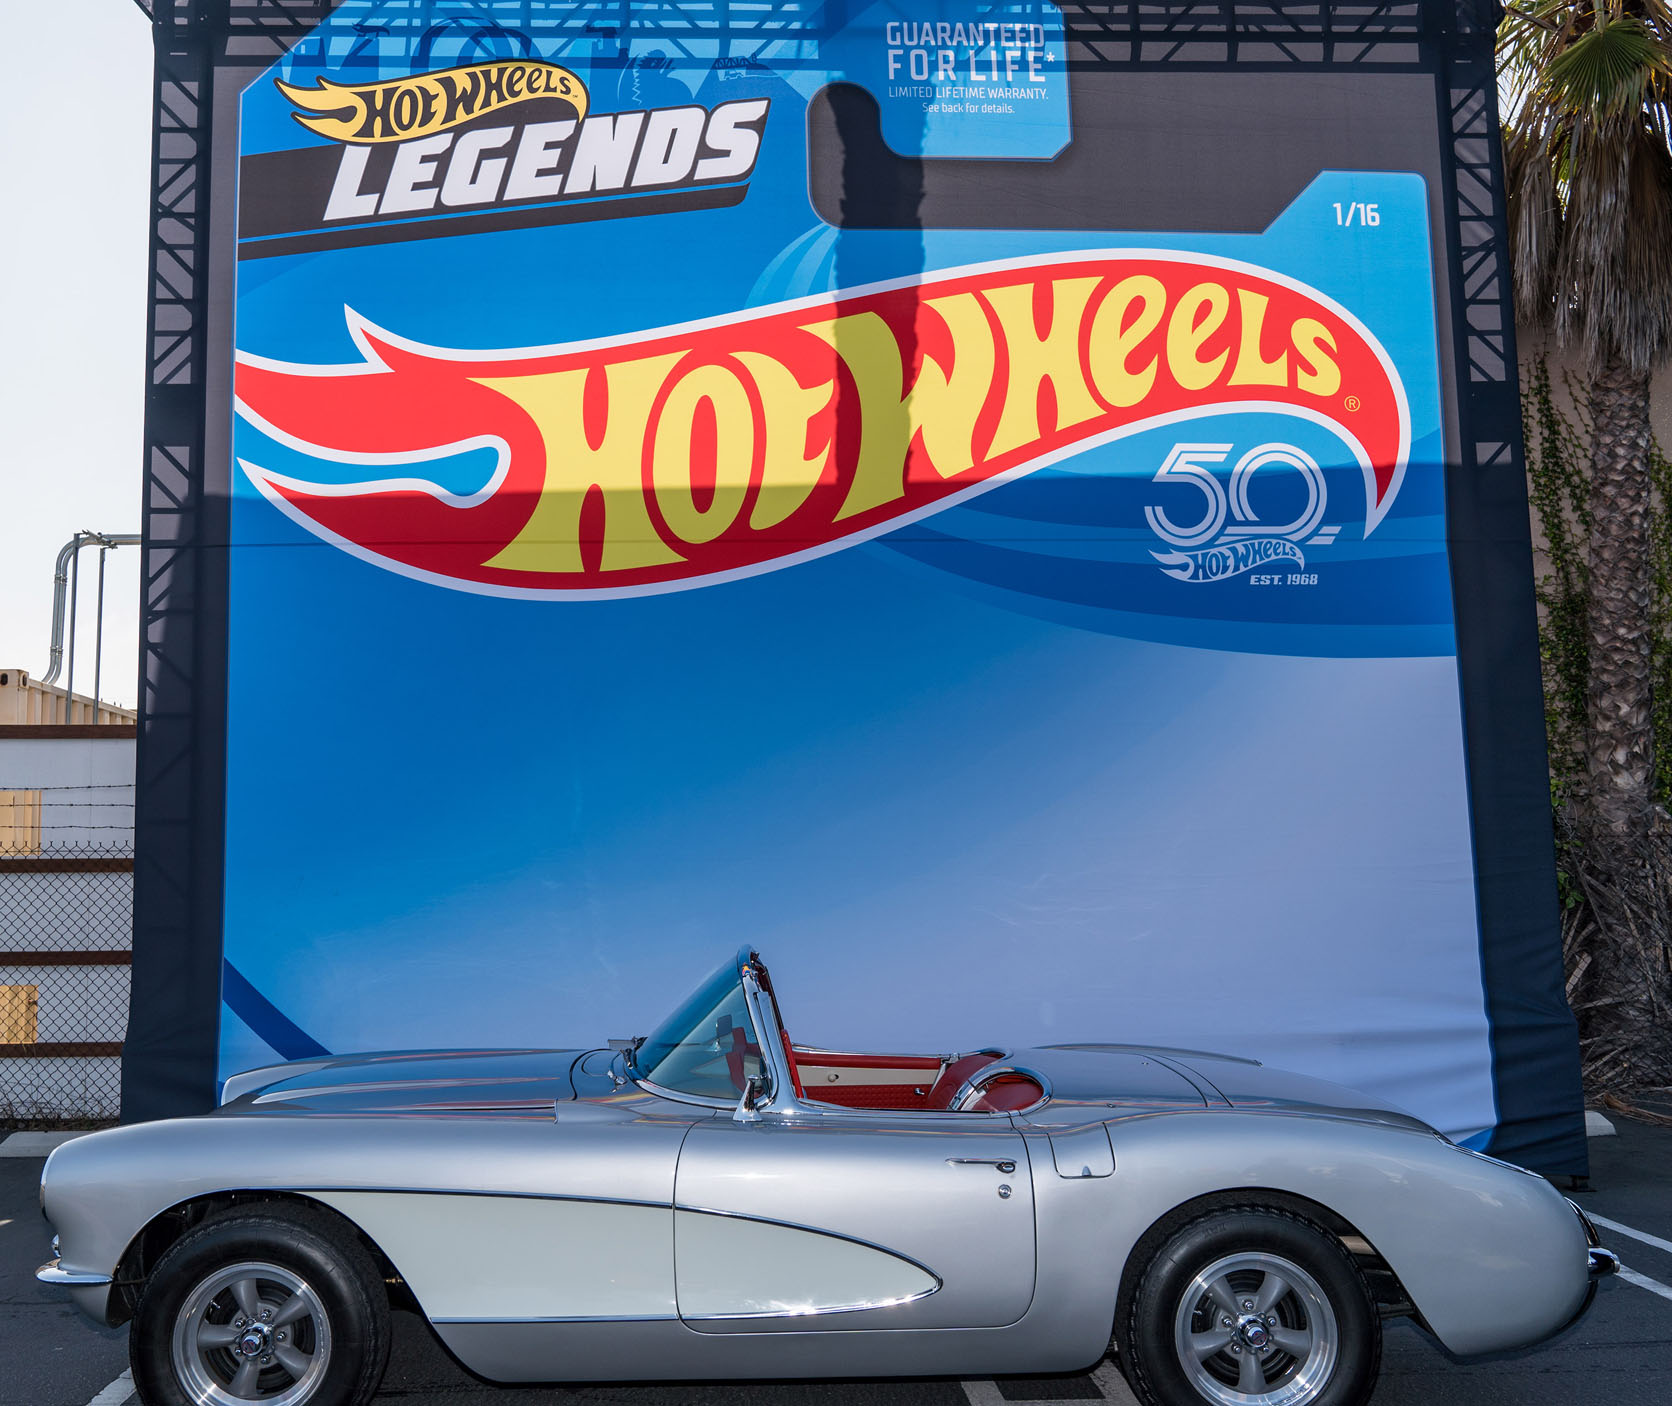 "Jay Leno, host of ""Jay Leno's Garageâ€, showcases his '57 Chevrolet Corvette at the Hot Wheels Legends Tour kick-off event in Los Angeles, CA. Learn More at www.HotWheels.com/LegendsTour (Paul A Hebert/Feature Photo Service)"